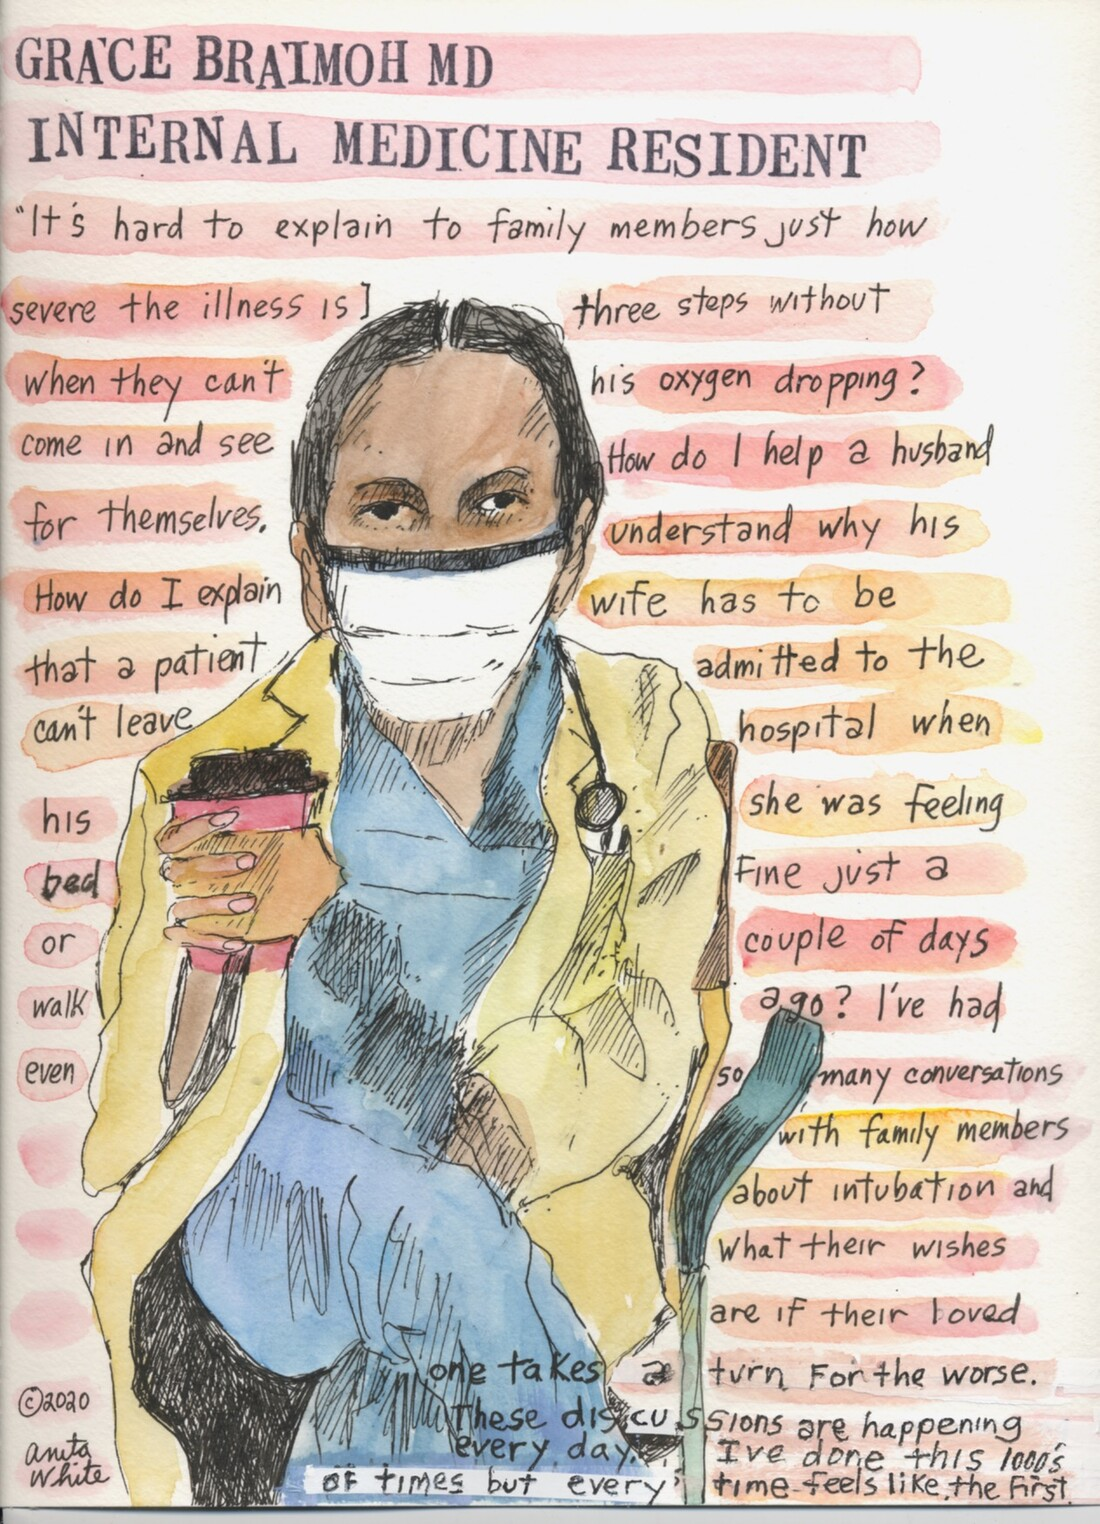 watercolor painting of a masked health care worker, holding a cup of coffee, over a narrative of her thoughts on being on the front line of the COVID-19 pandemic